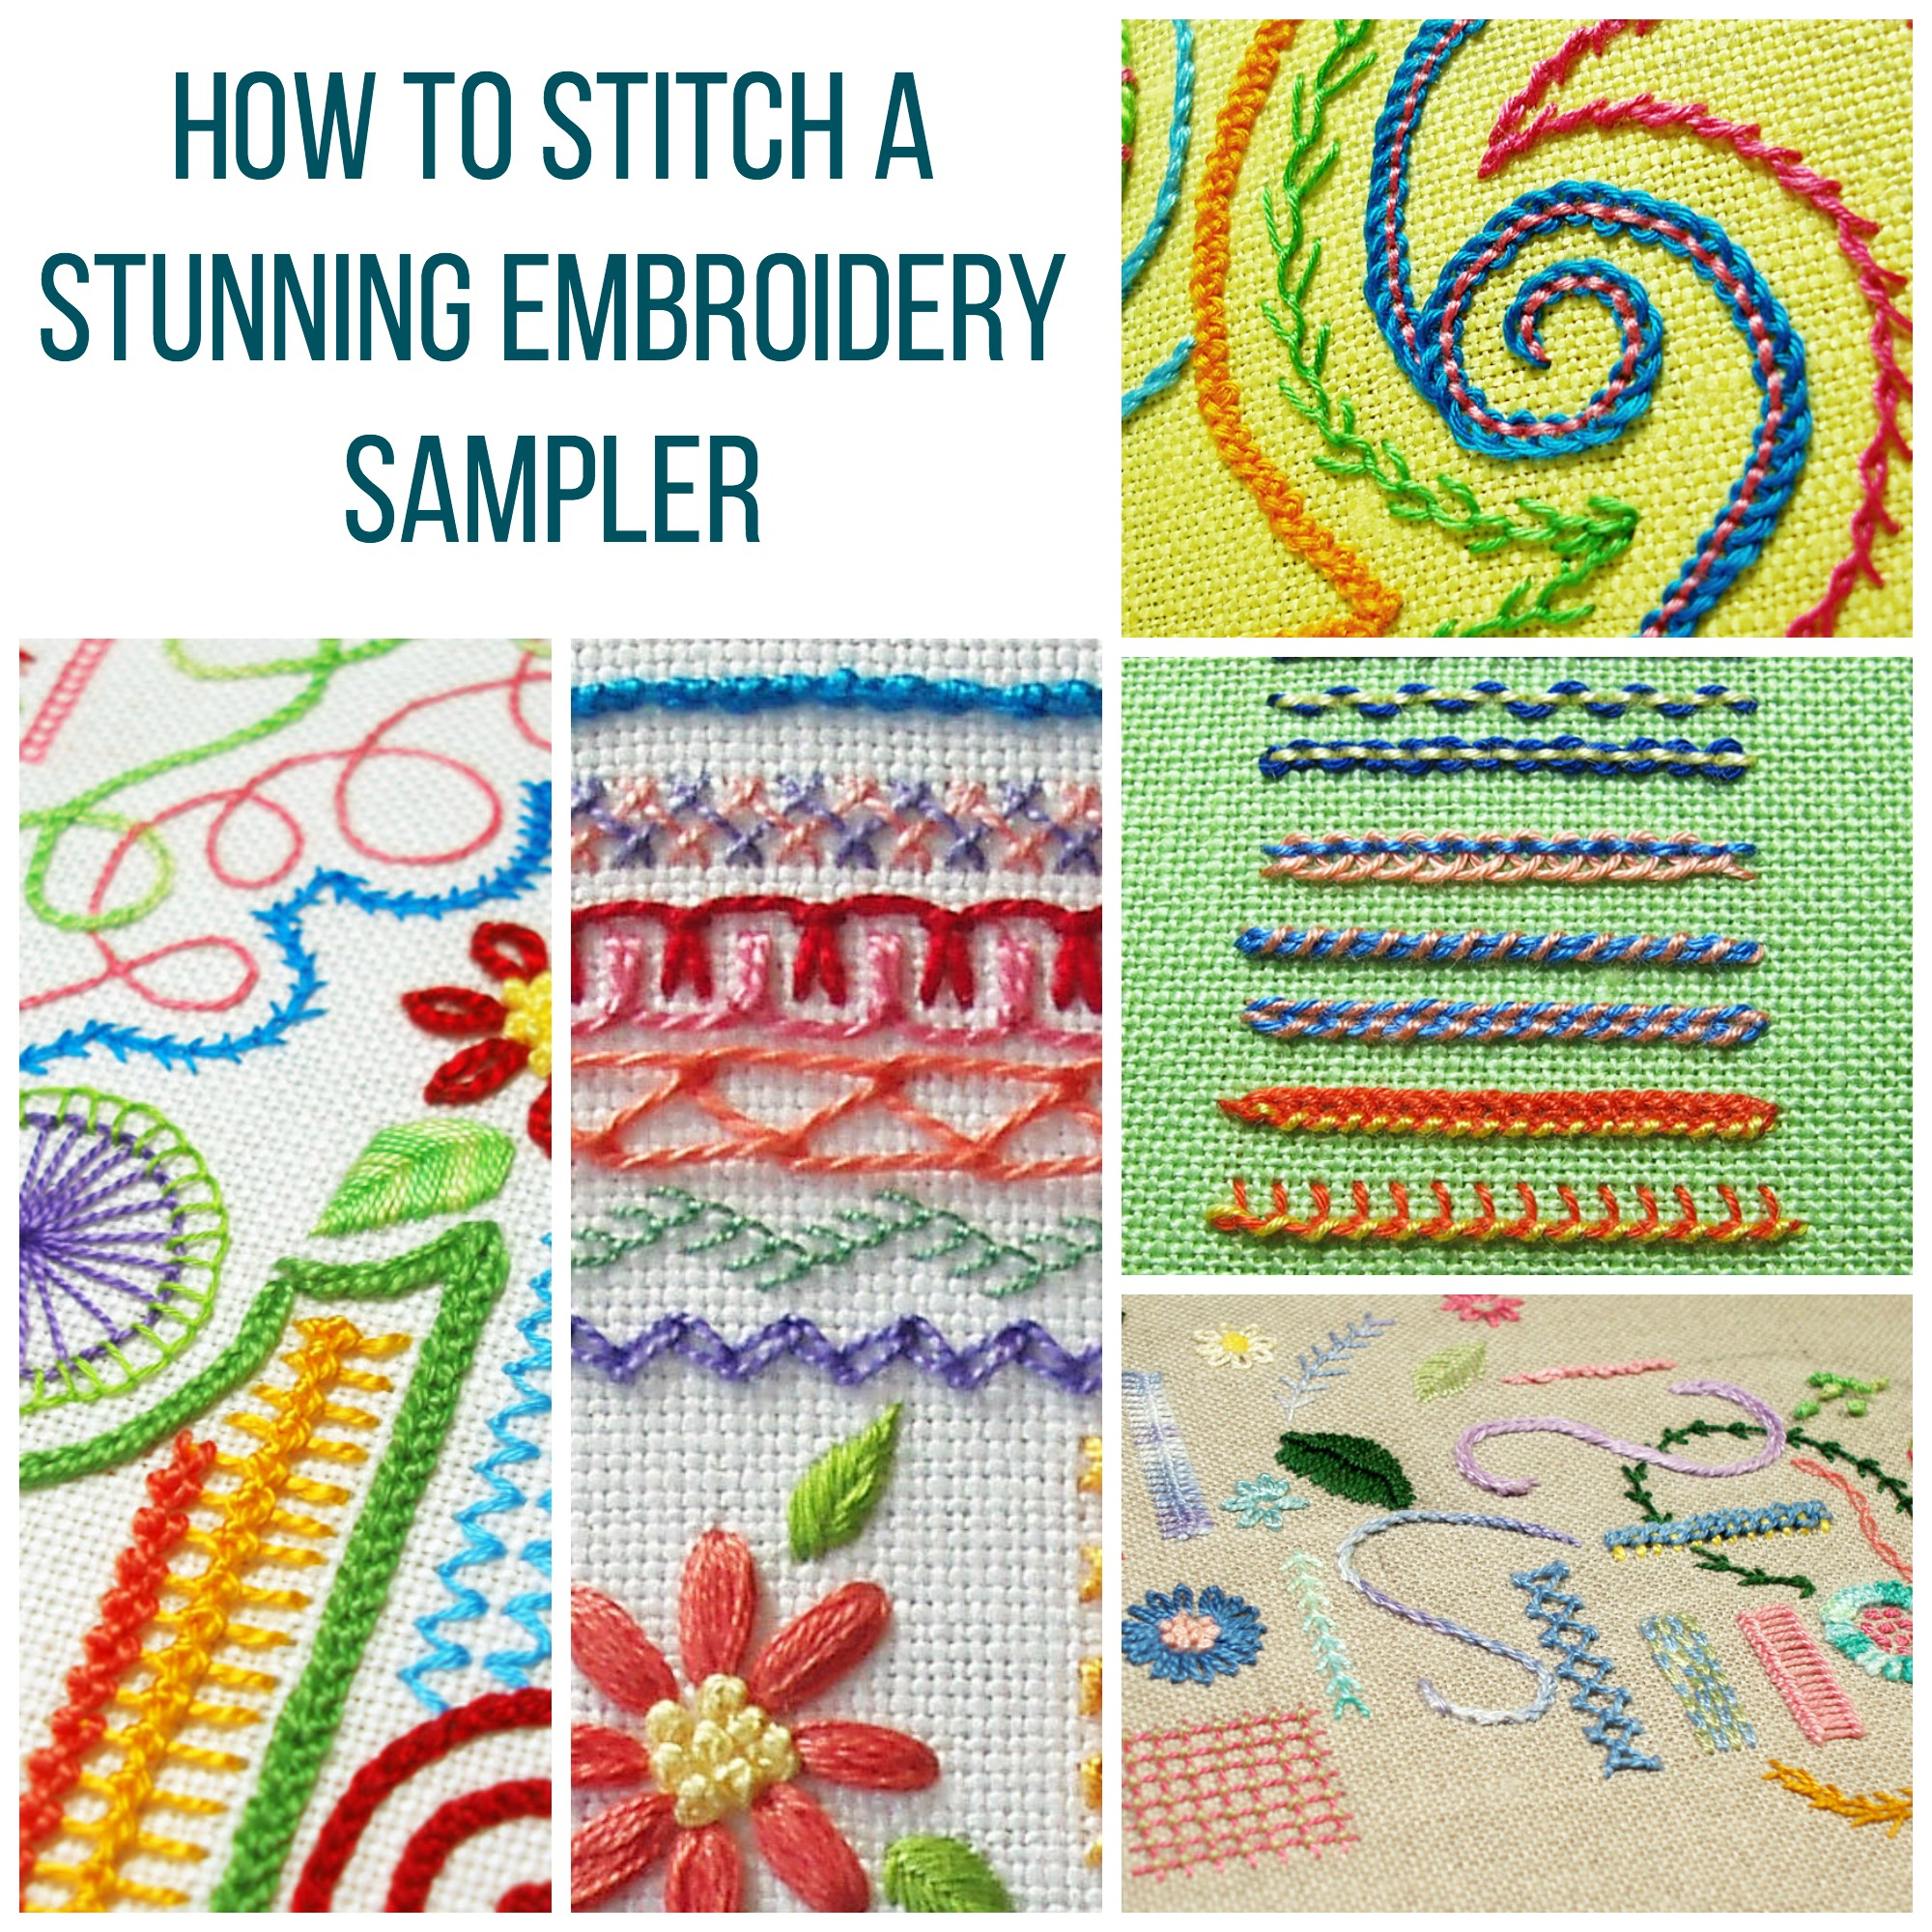 Embroidery Sampler Patterns Free Show Off Your Stitching With A Stunning Embroidery Sampler